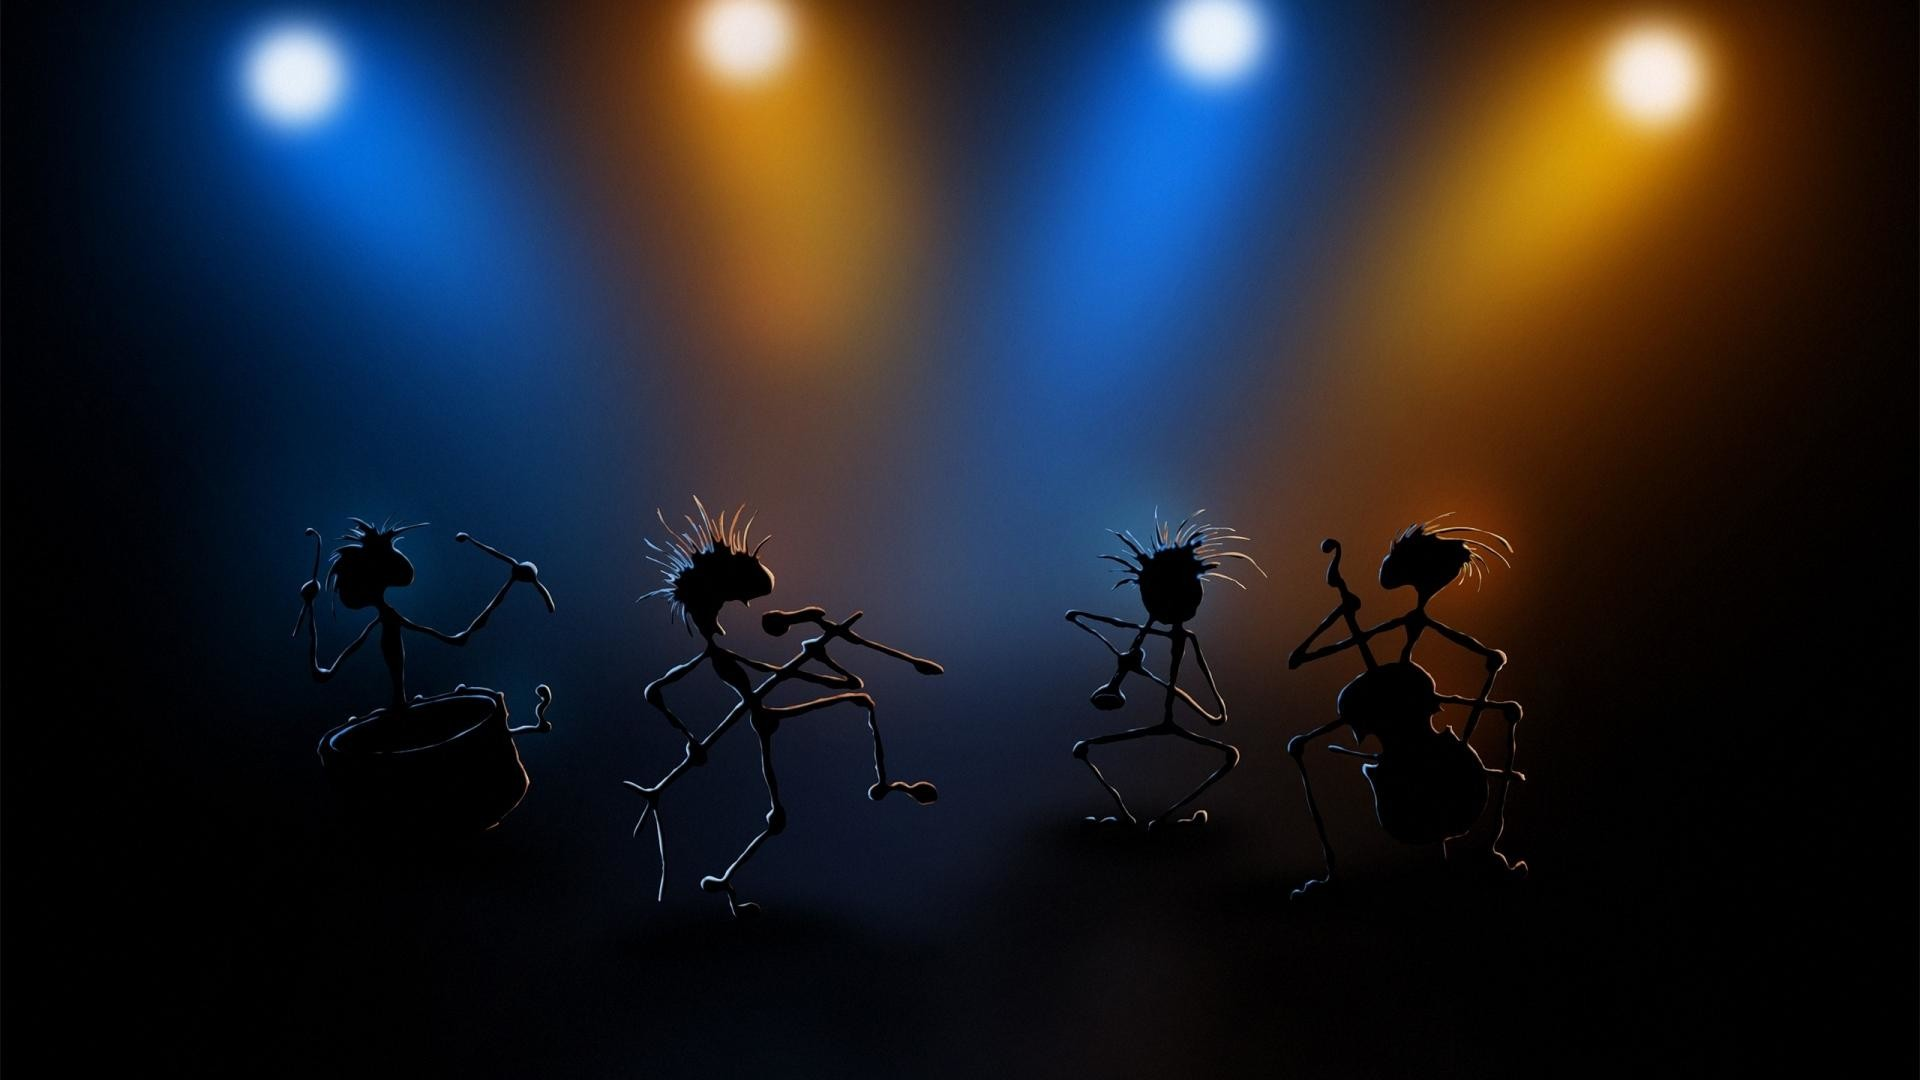 Free-Images-Dance-Backgrounds